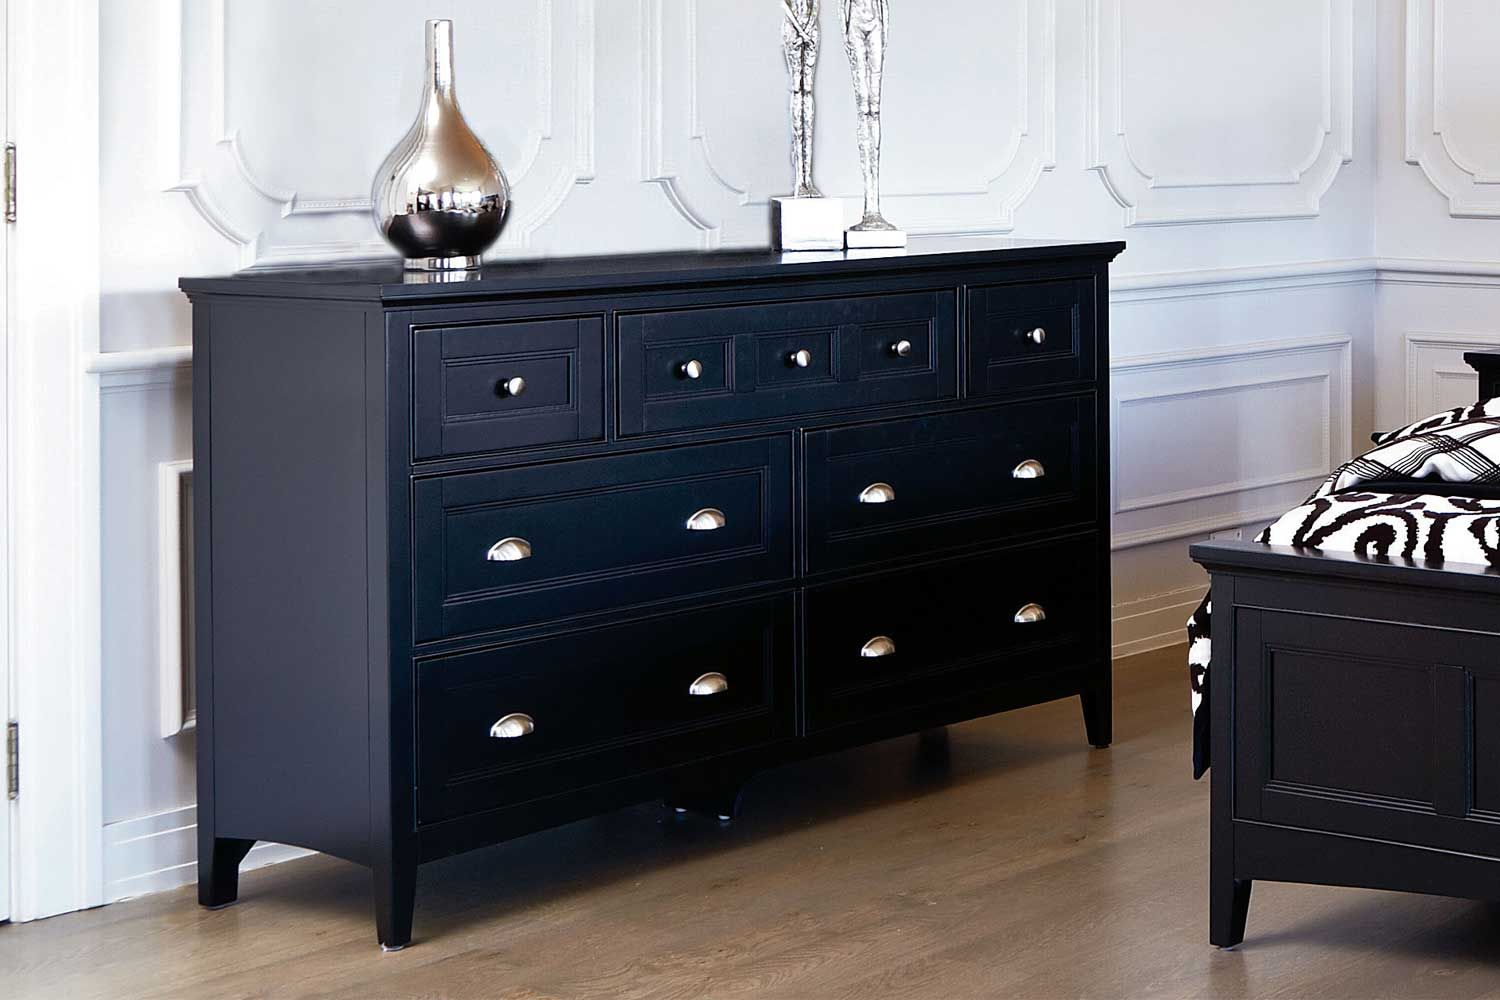 Pin by Charlene Bainbridge on Master Bedroom Pinterest Lowboy